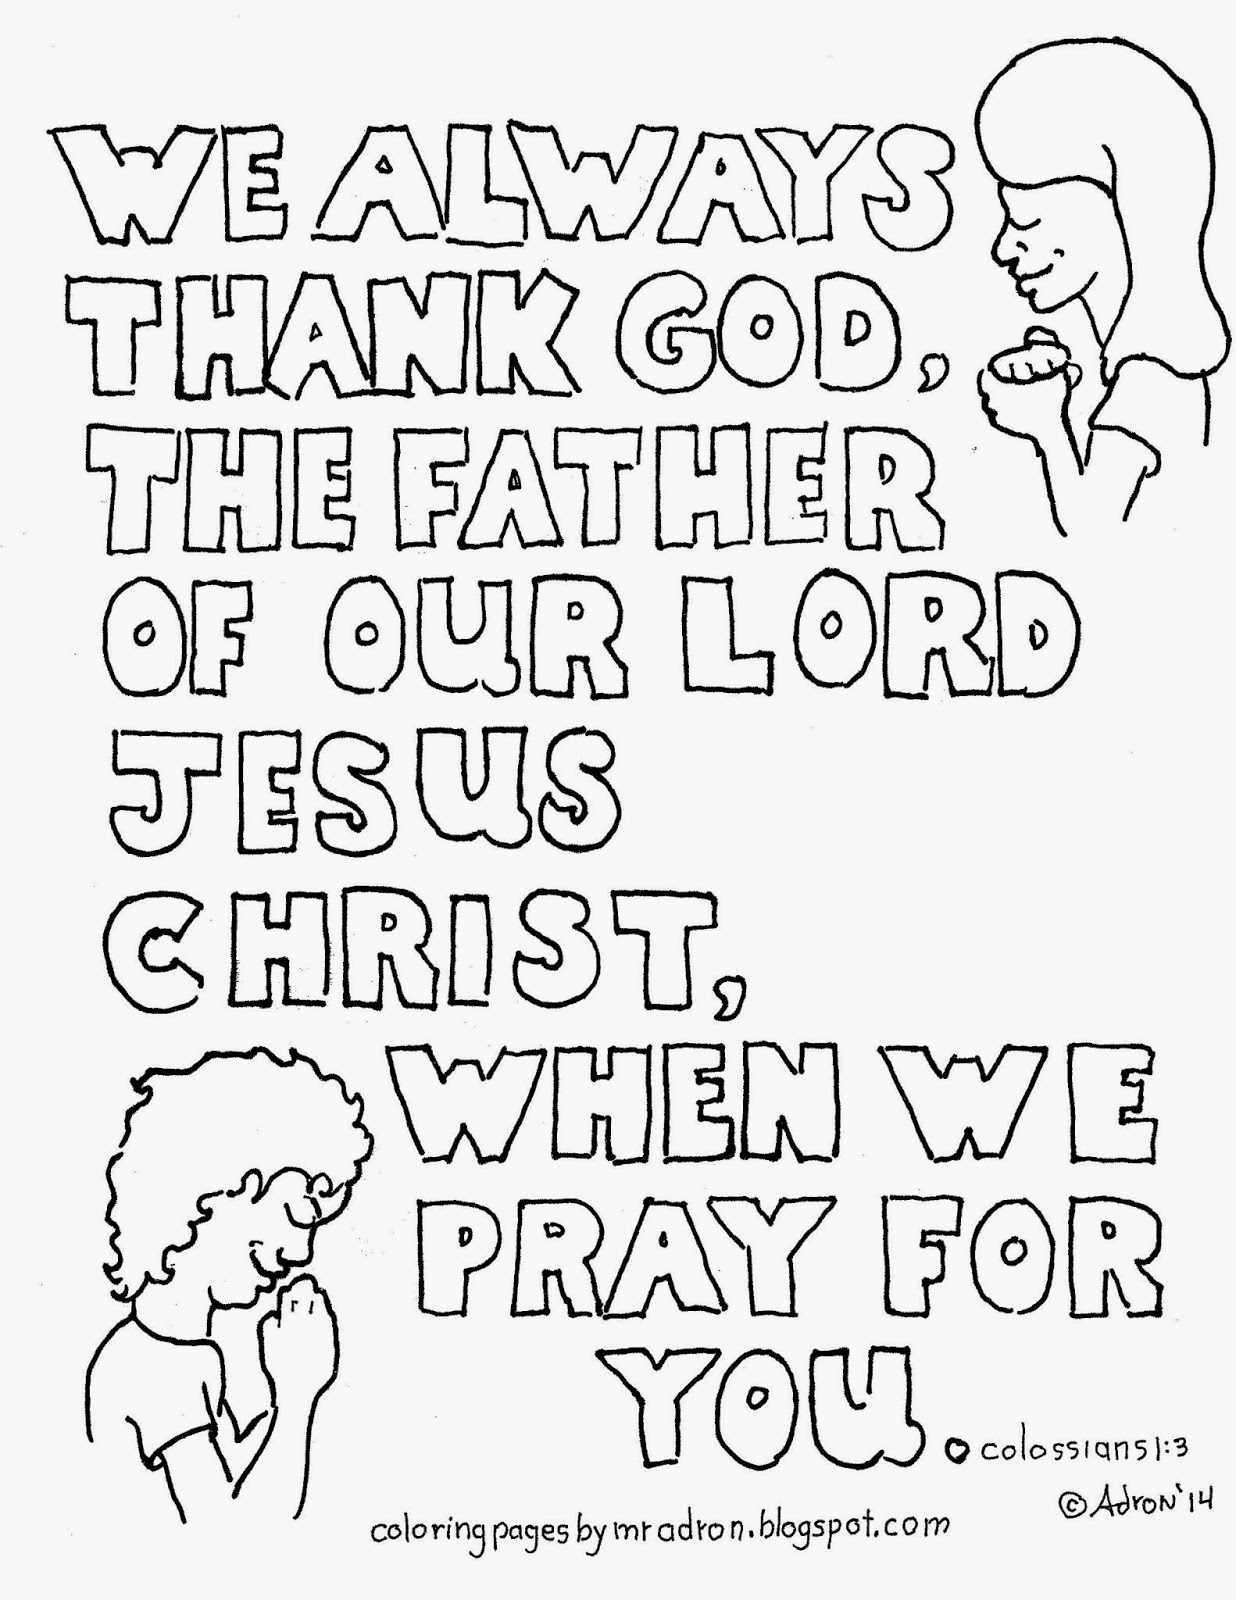 Colossians 1 Coloring Pages Kids wallpaper 1080p